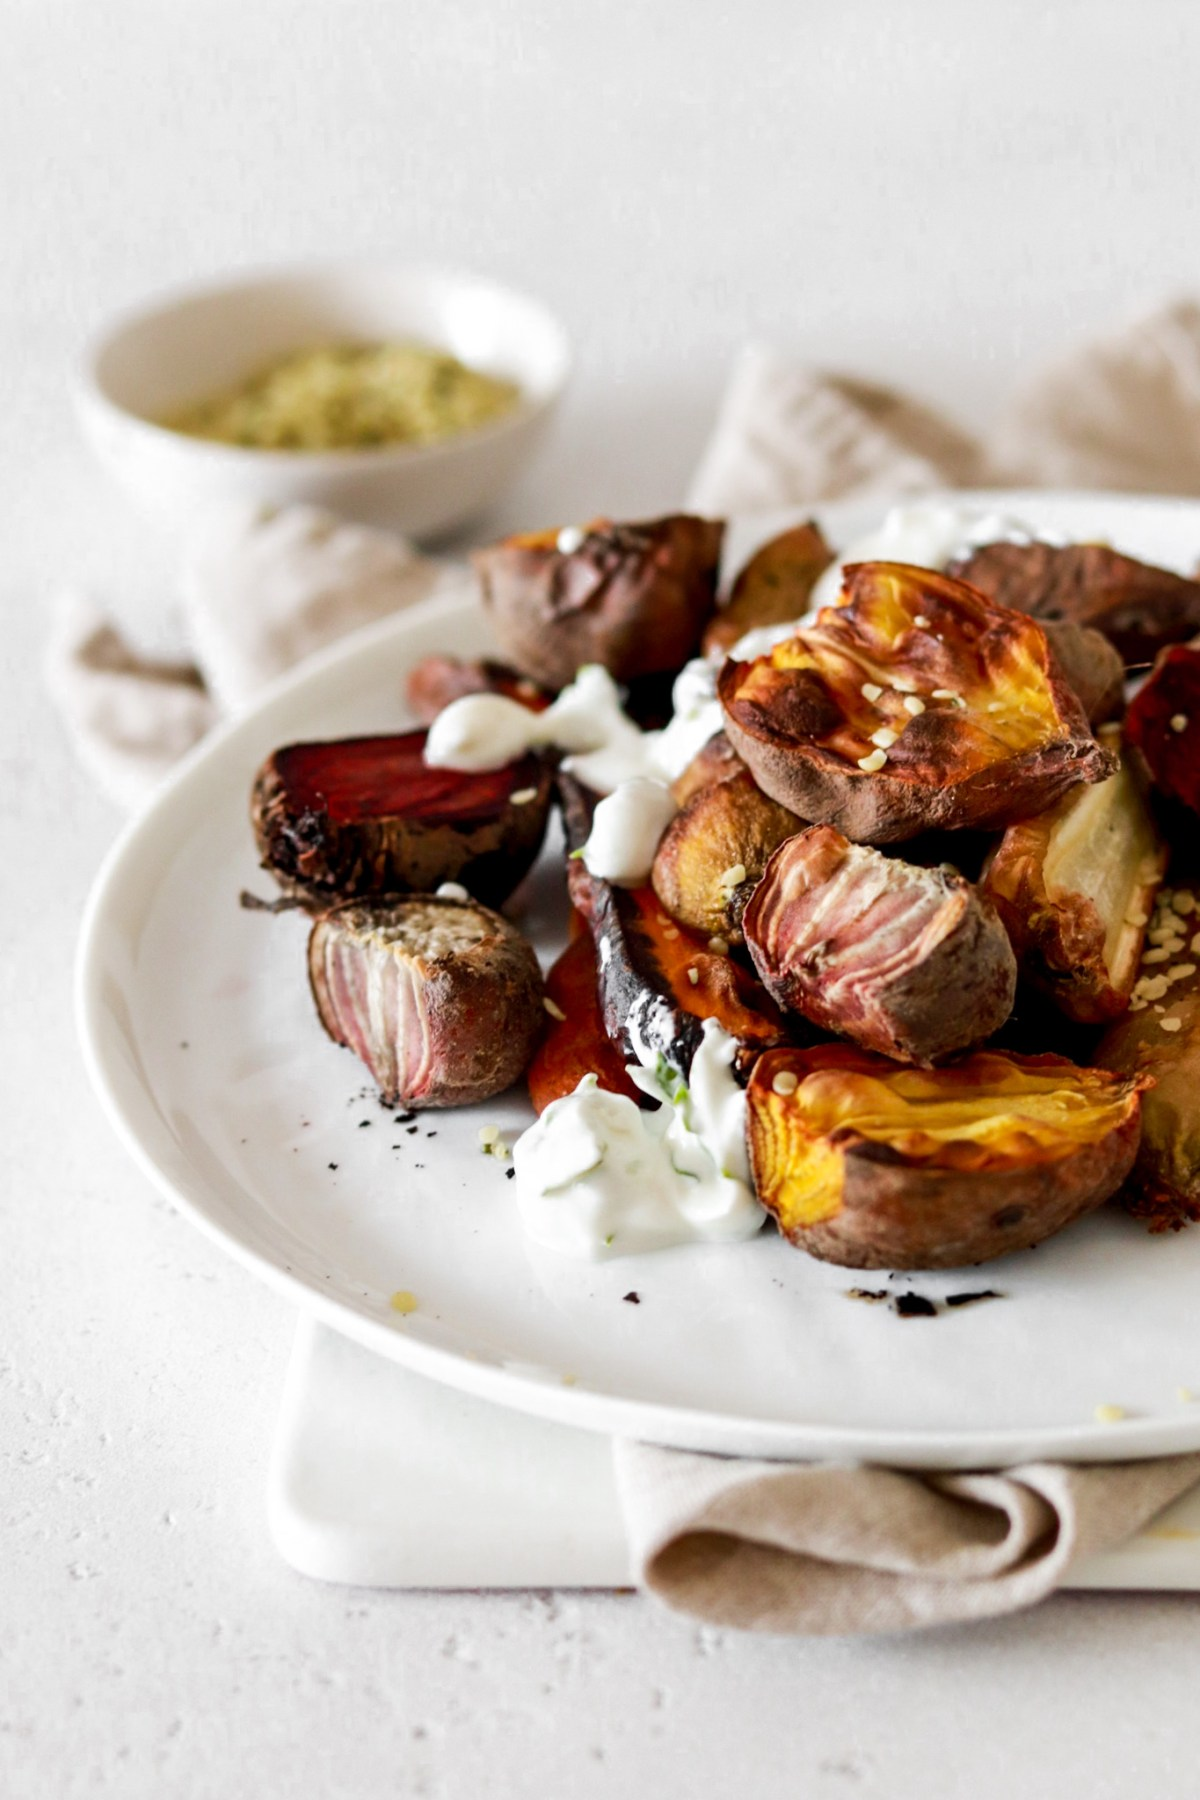 ROASTED BEETS & CARROTS (VEGAN & GLUTEN FREE) From Front Close Up